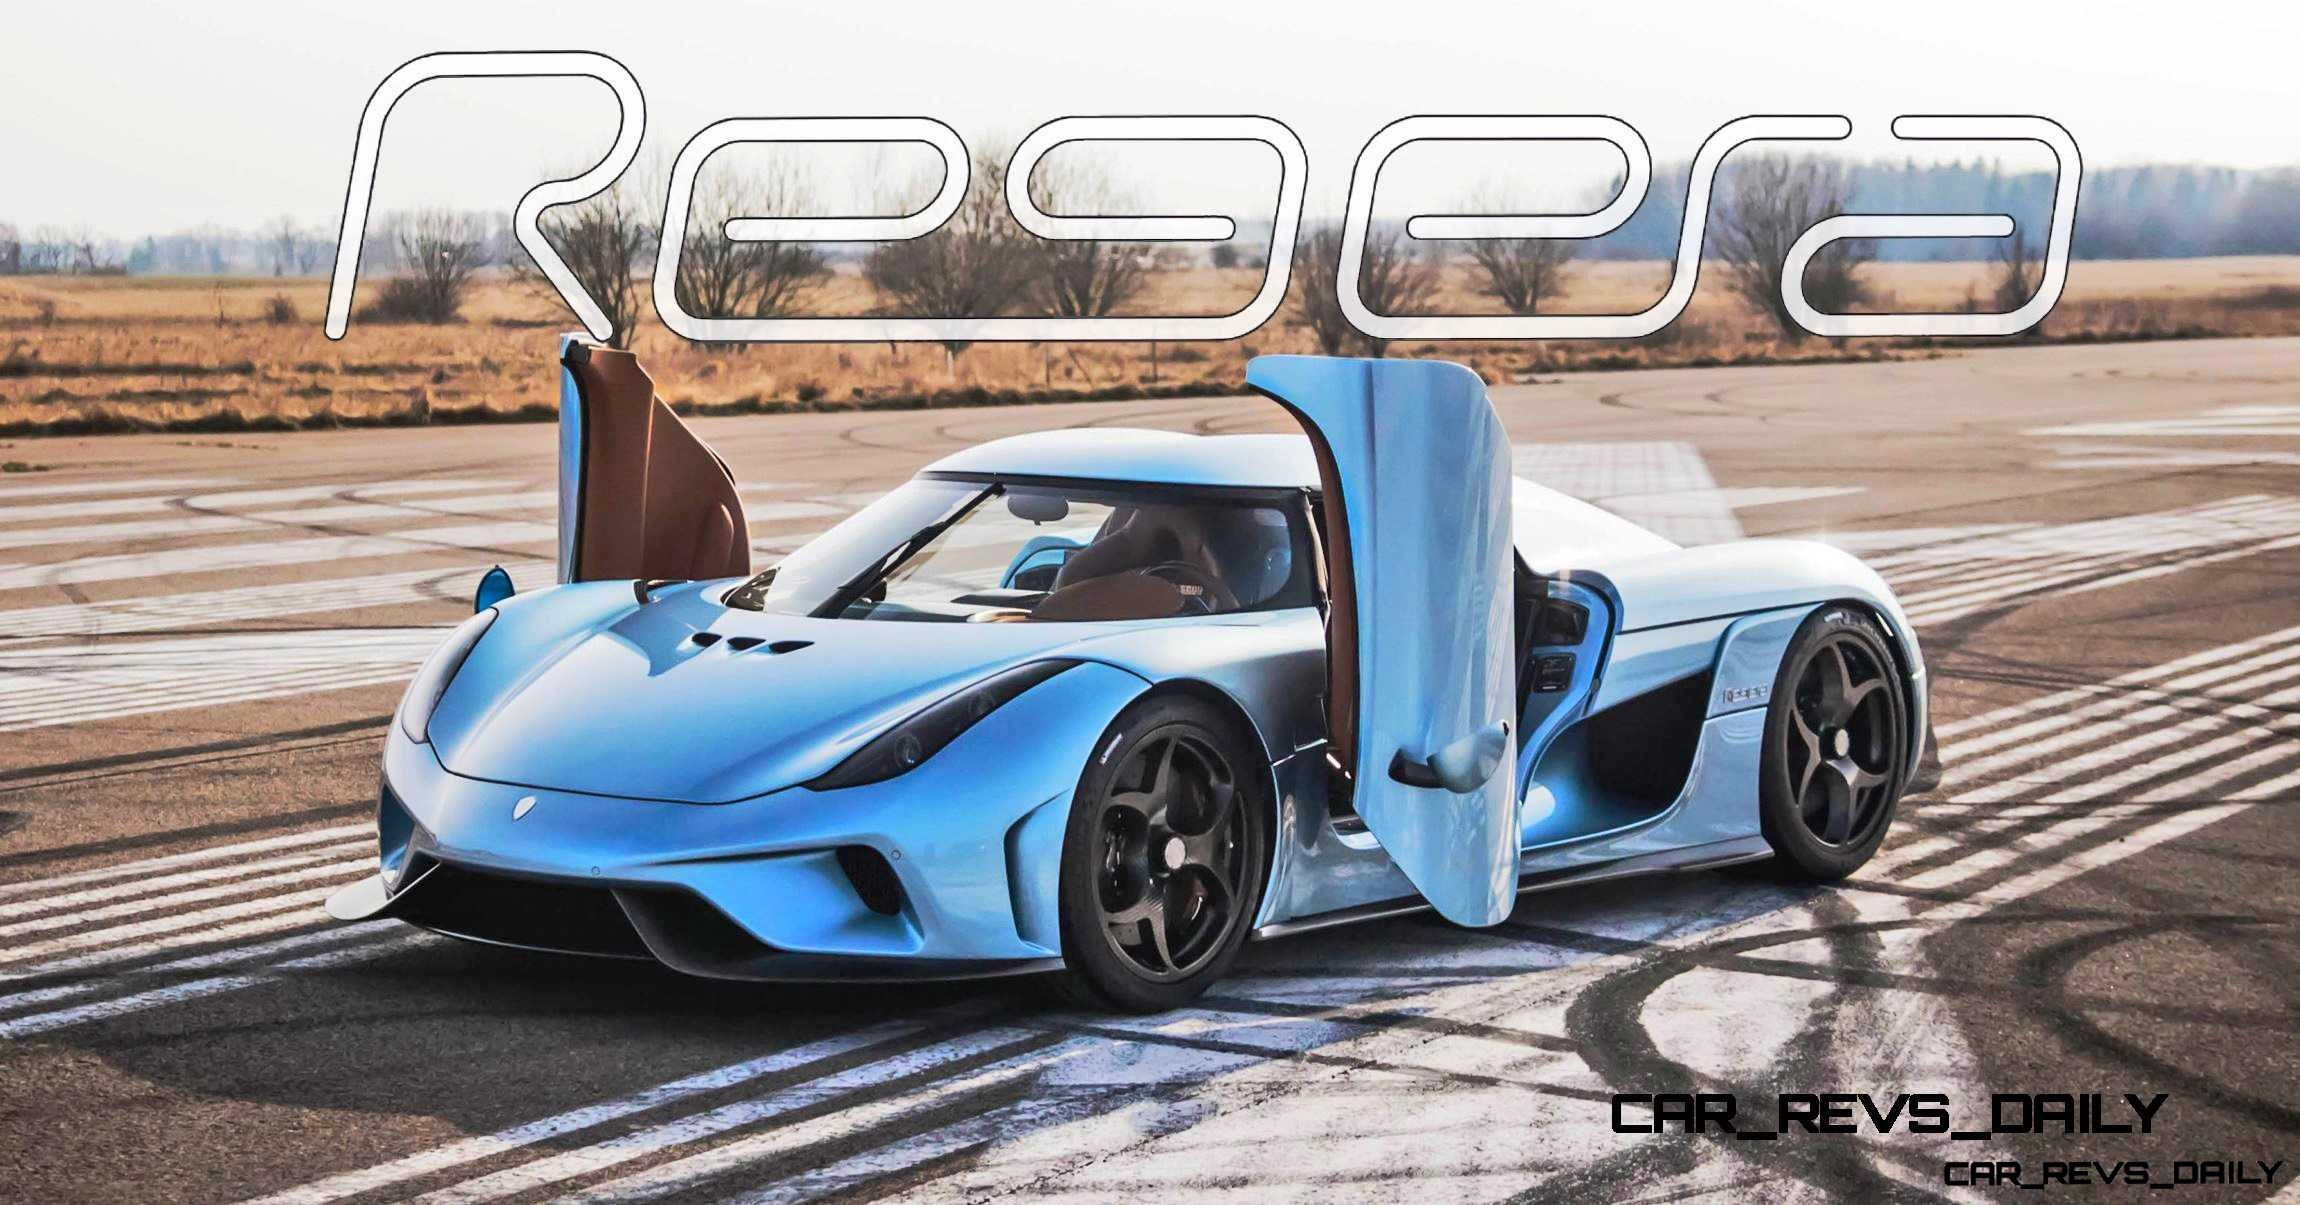 2015 koenigsegg agera one 1 back in usa via manhattan motorcars car revs. Black Bedroom Furniture Sets. Home Design Ideas